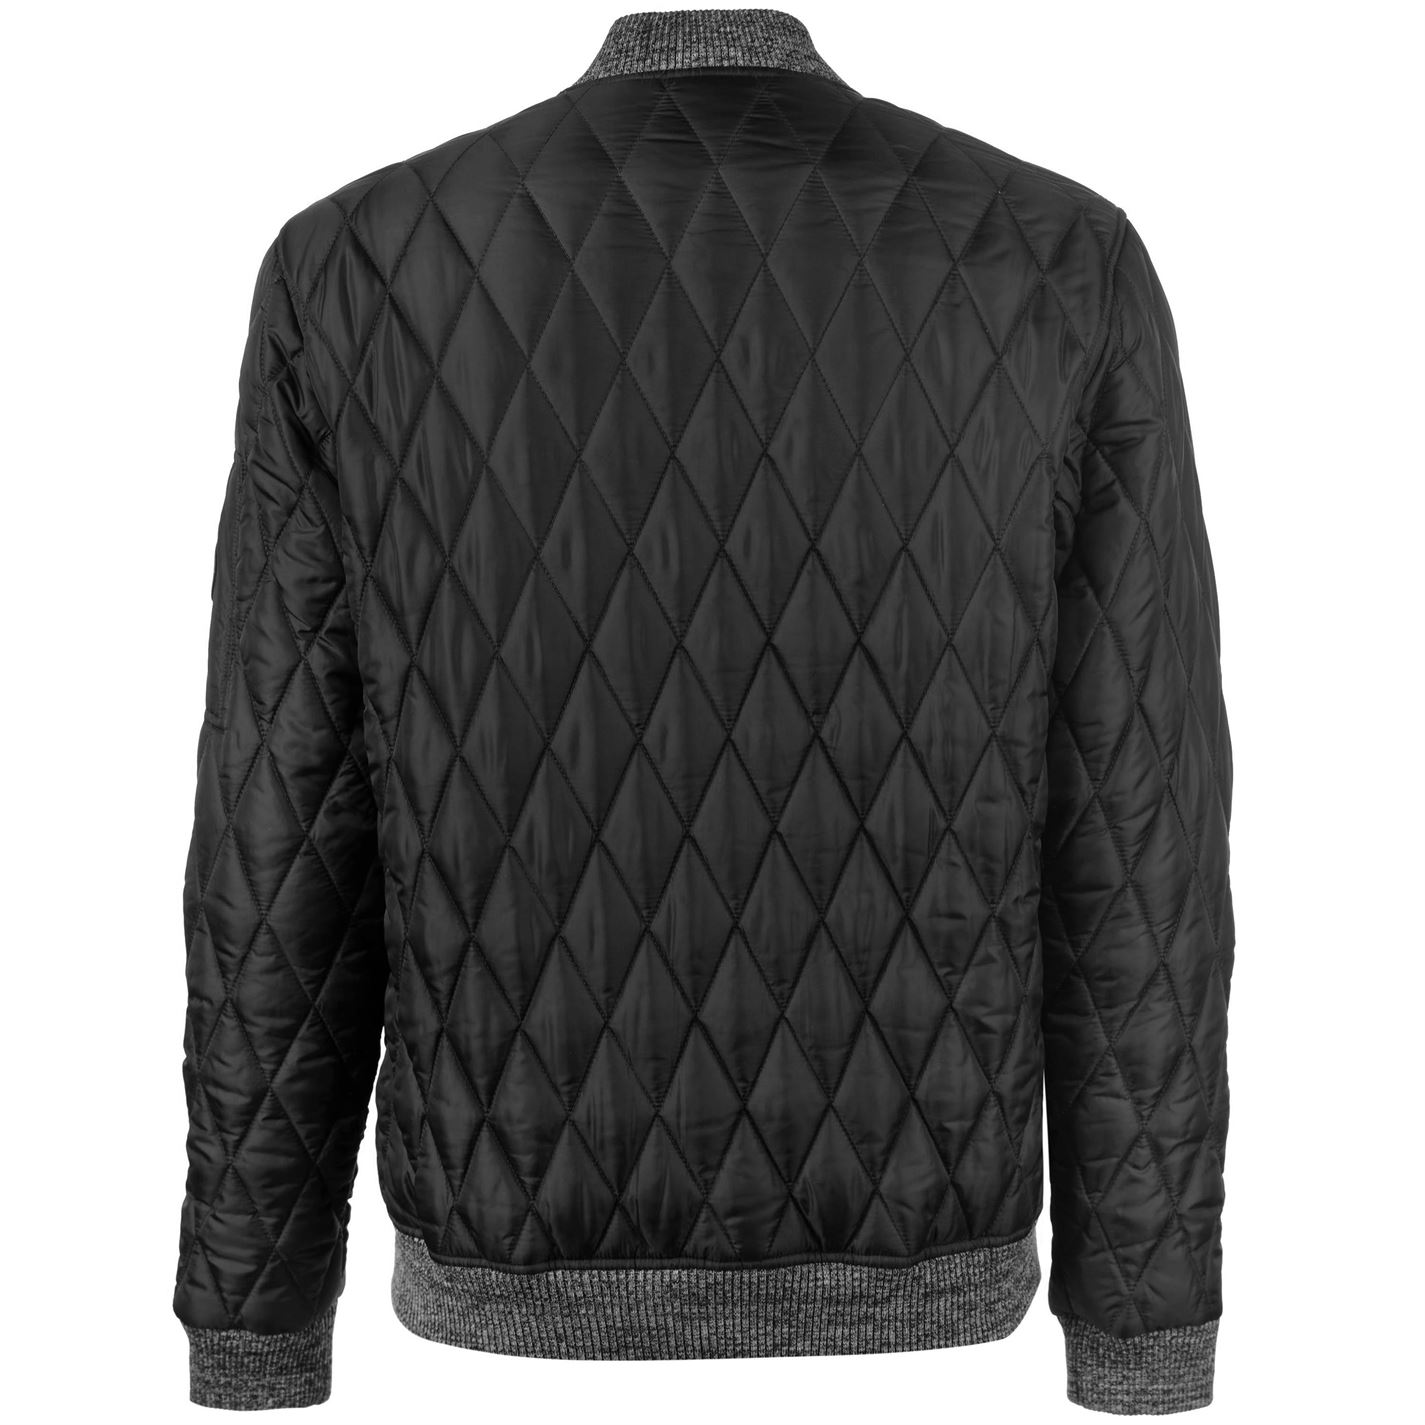 No-Fear-Quilted-Bomber-Jacket-Mens-Gents-Coat-Top-Full-Length-Sleeve-Zip-Zipped thumbnail 6